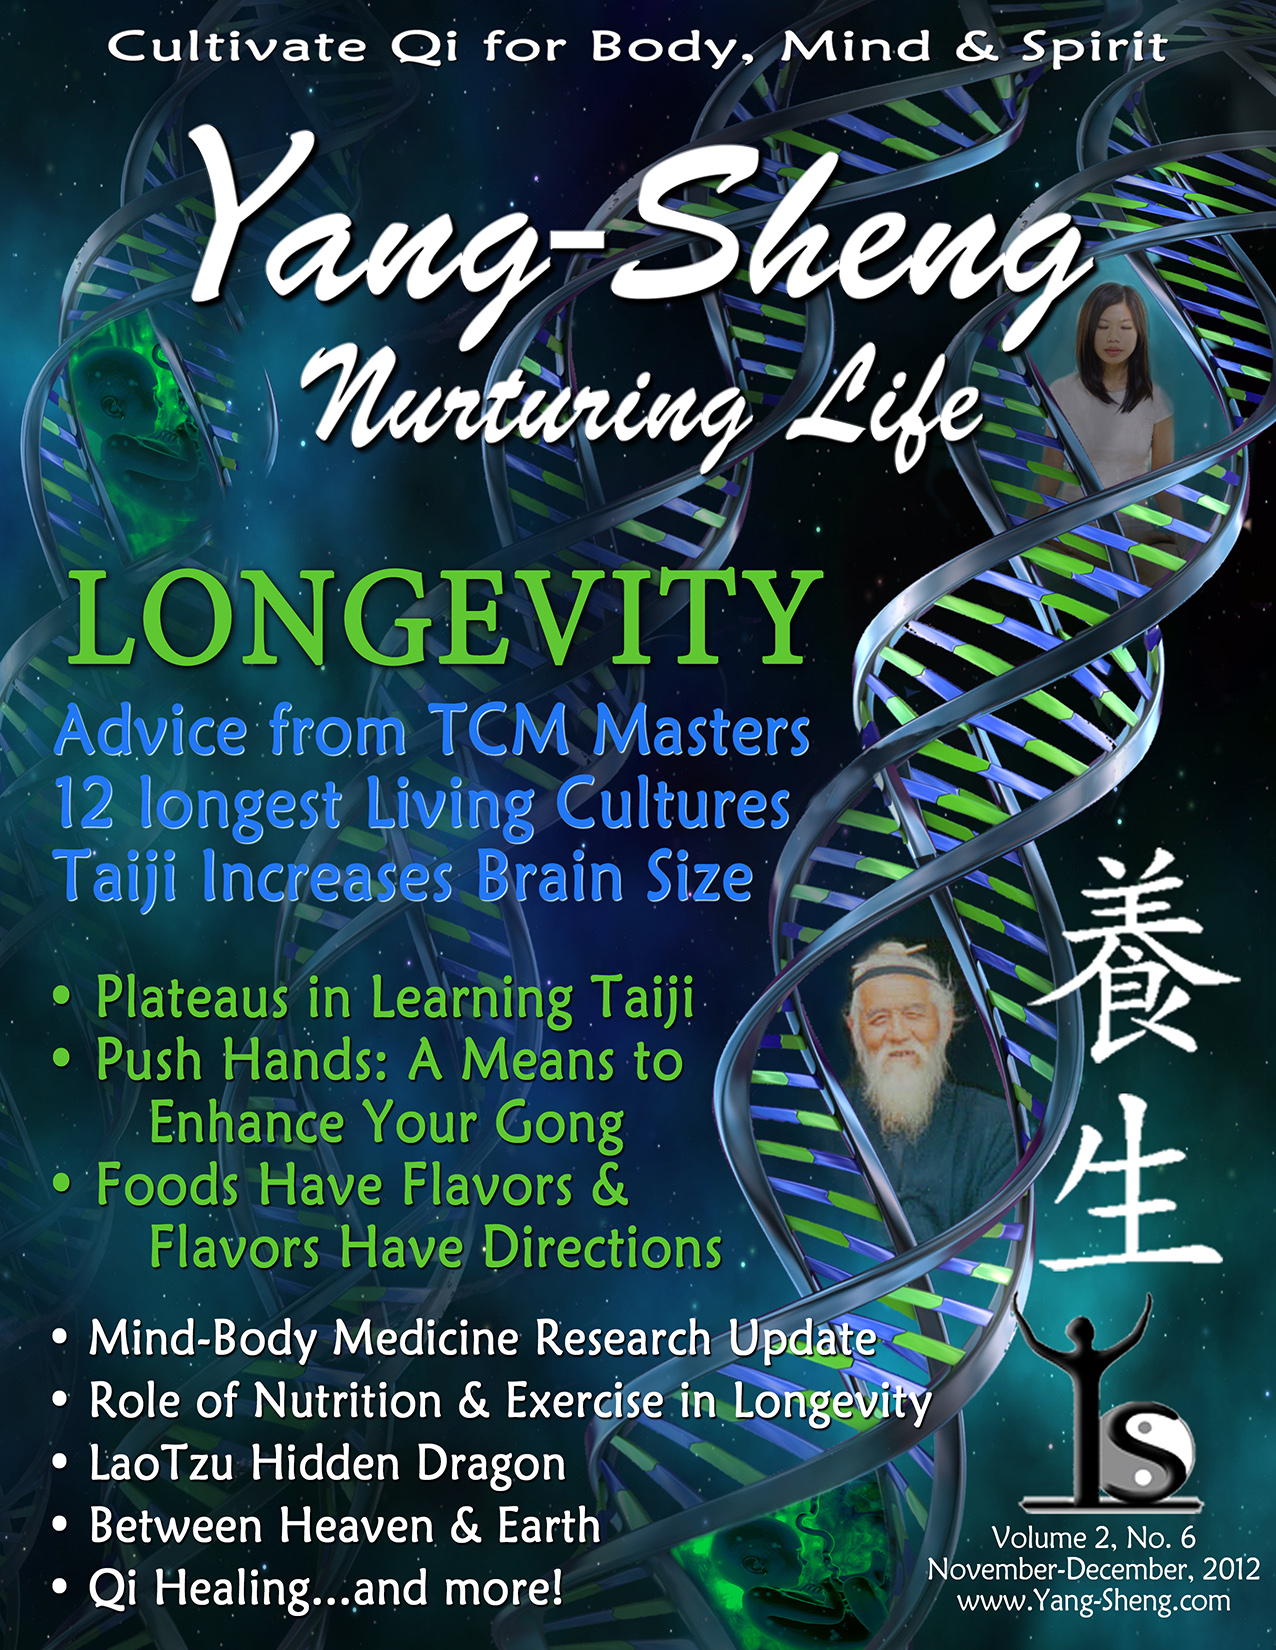 Yang-Sheng-Nov-Dec-2012-cover-print-150dpi